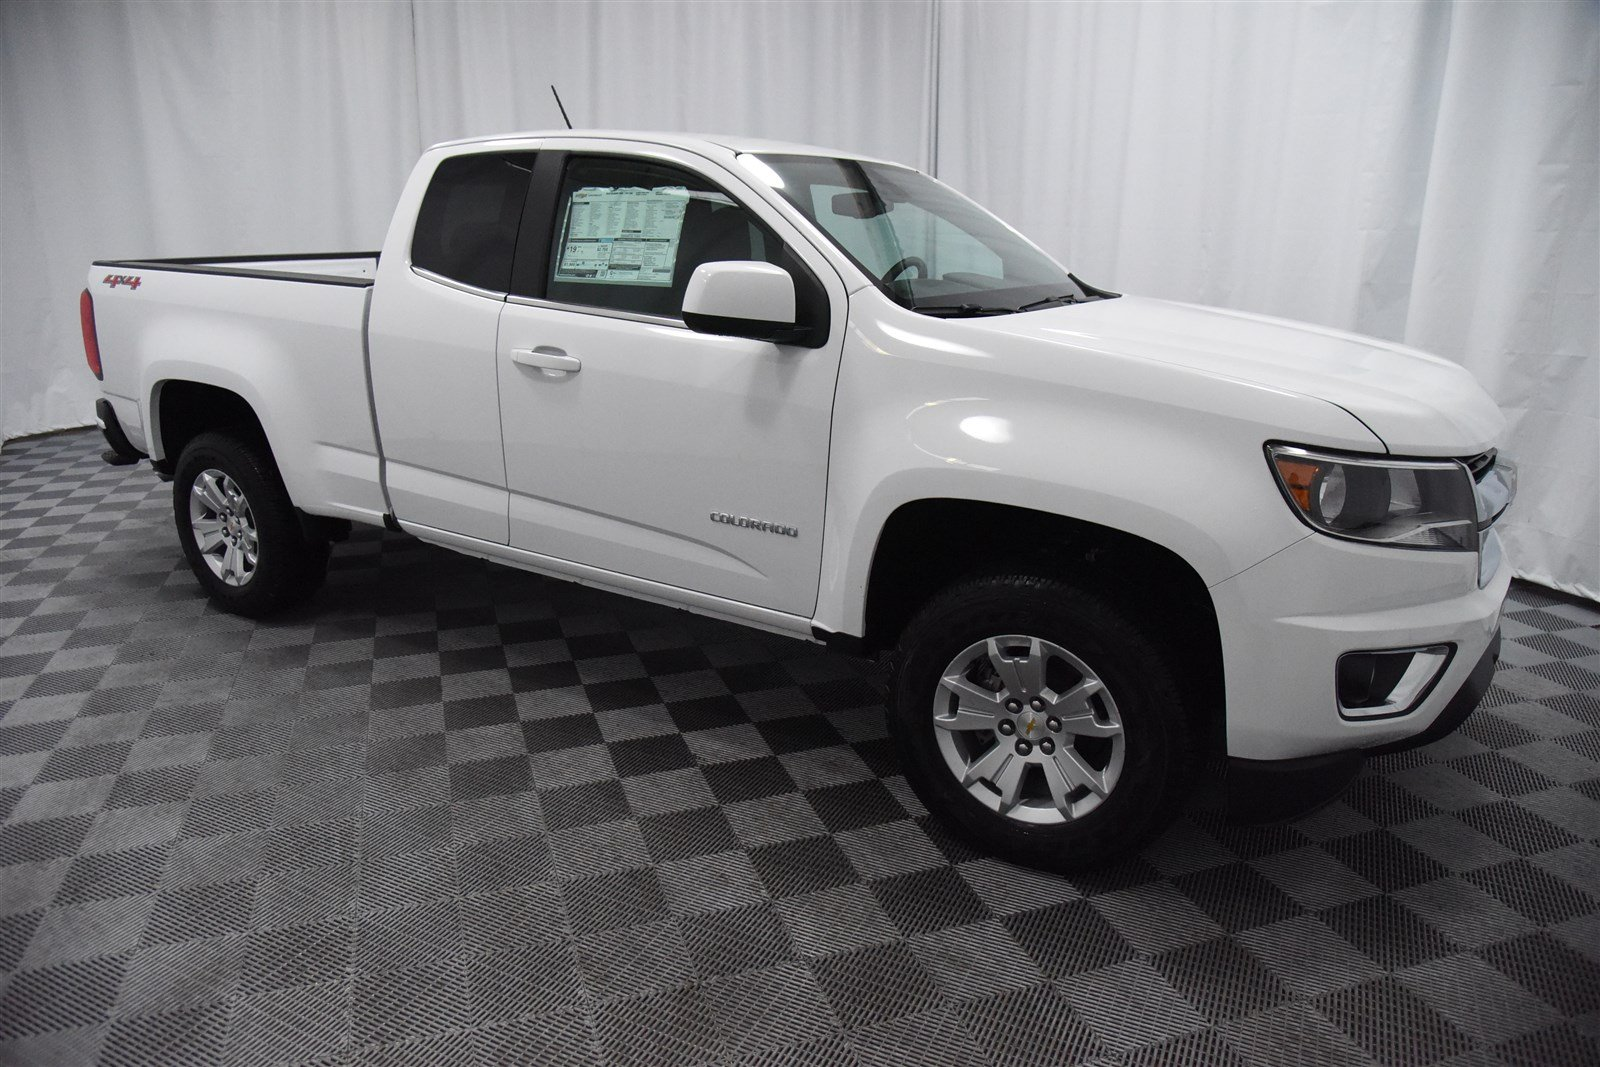 New 2018 Chevrolet Colorado Extended Cab LT 4x4 Truck In